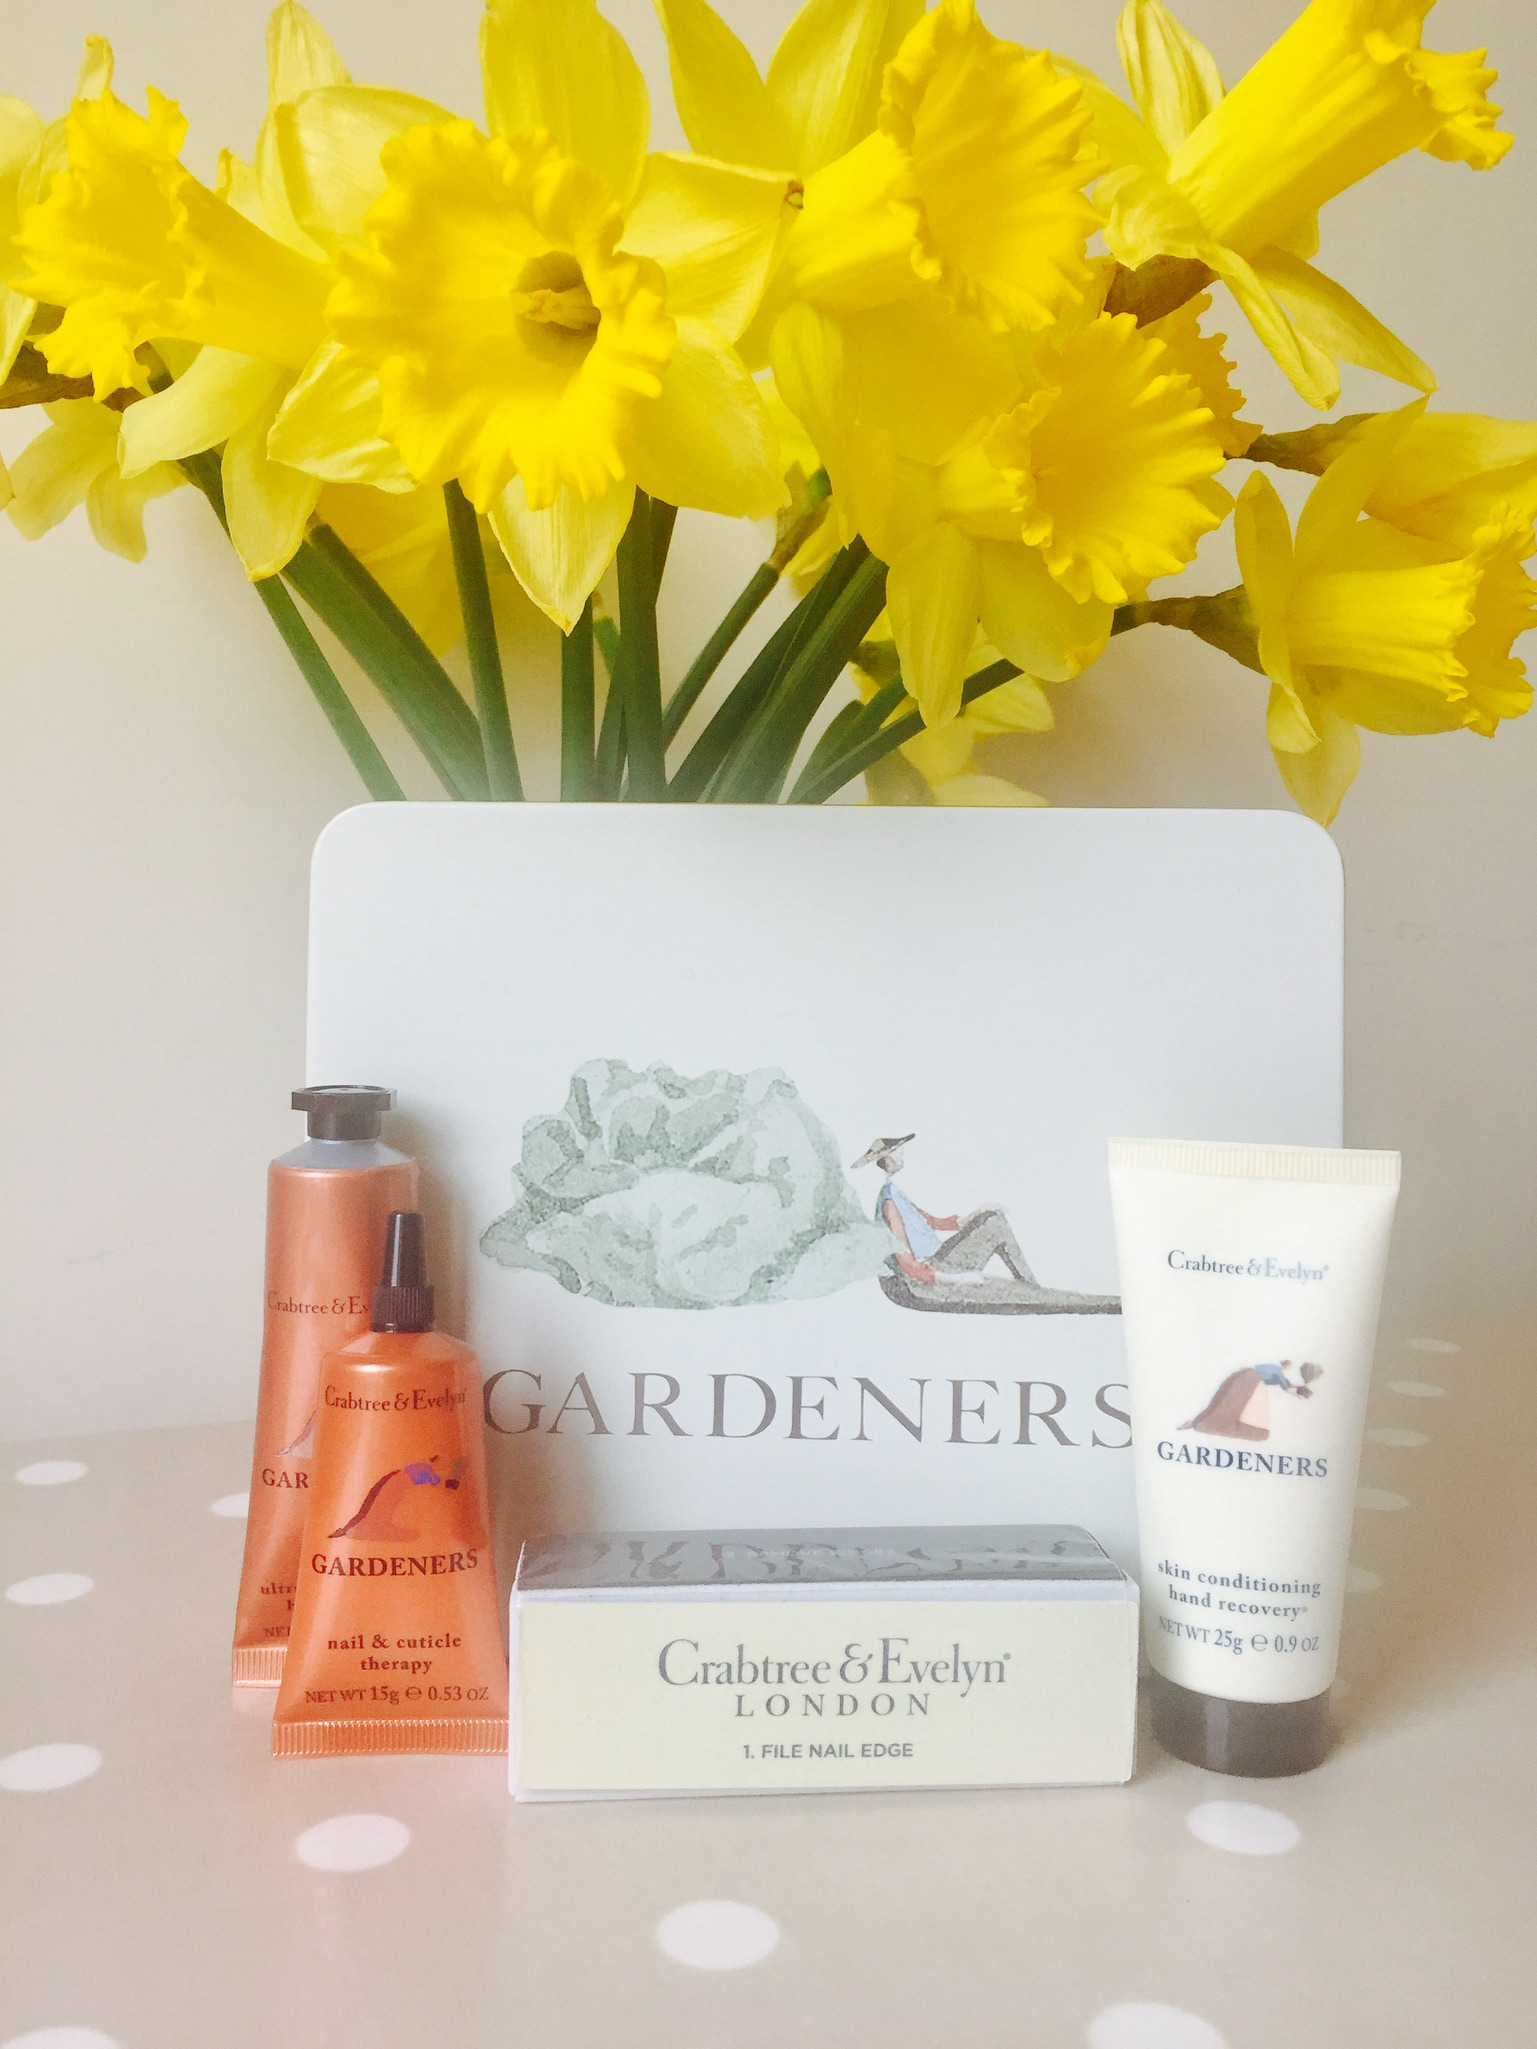 Crabtree & Evelyn Gardeners Hand Recovery Set